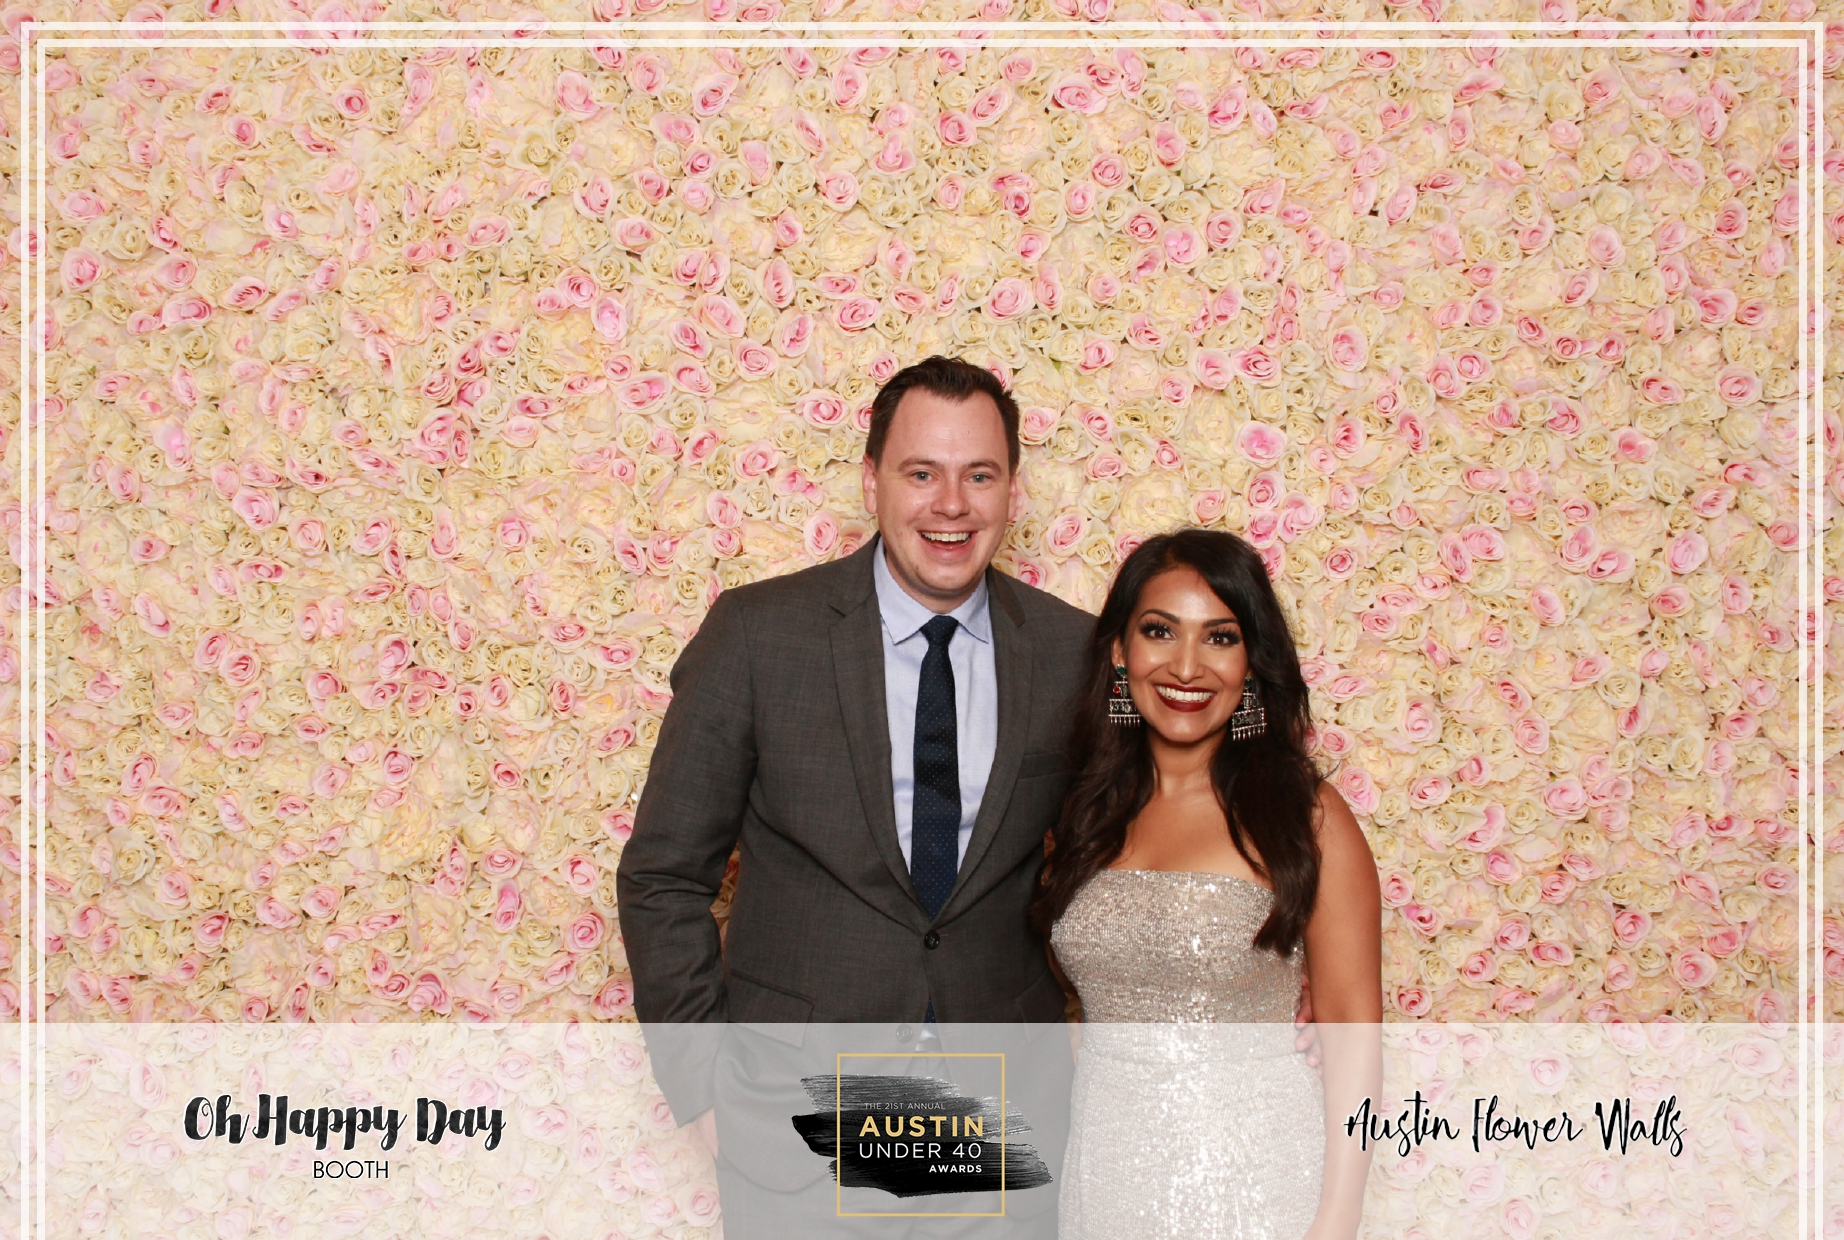 Oh Happy Day Booth - Austin Under 40-68.jpg